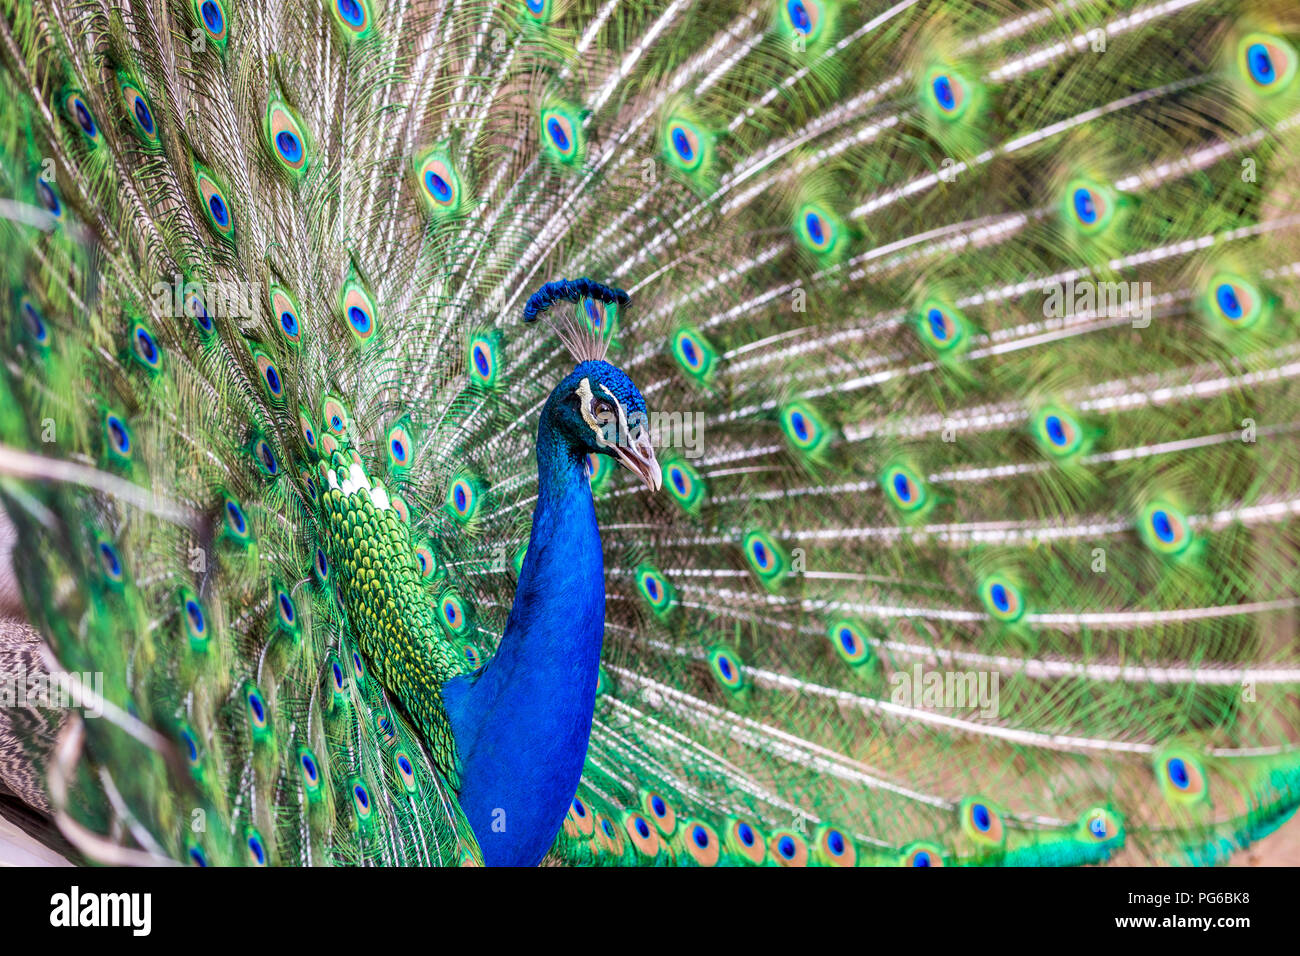 Close up shot of a Peacock - Stock Image